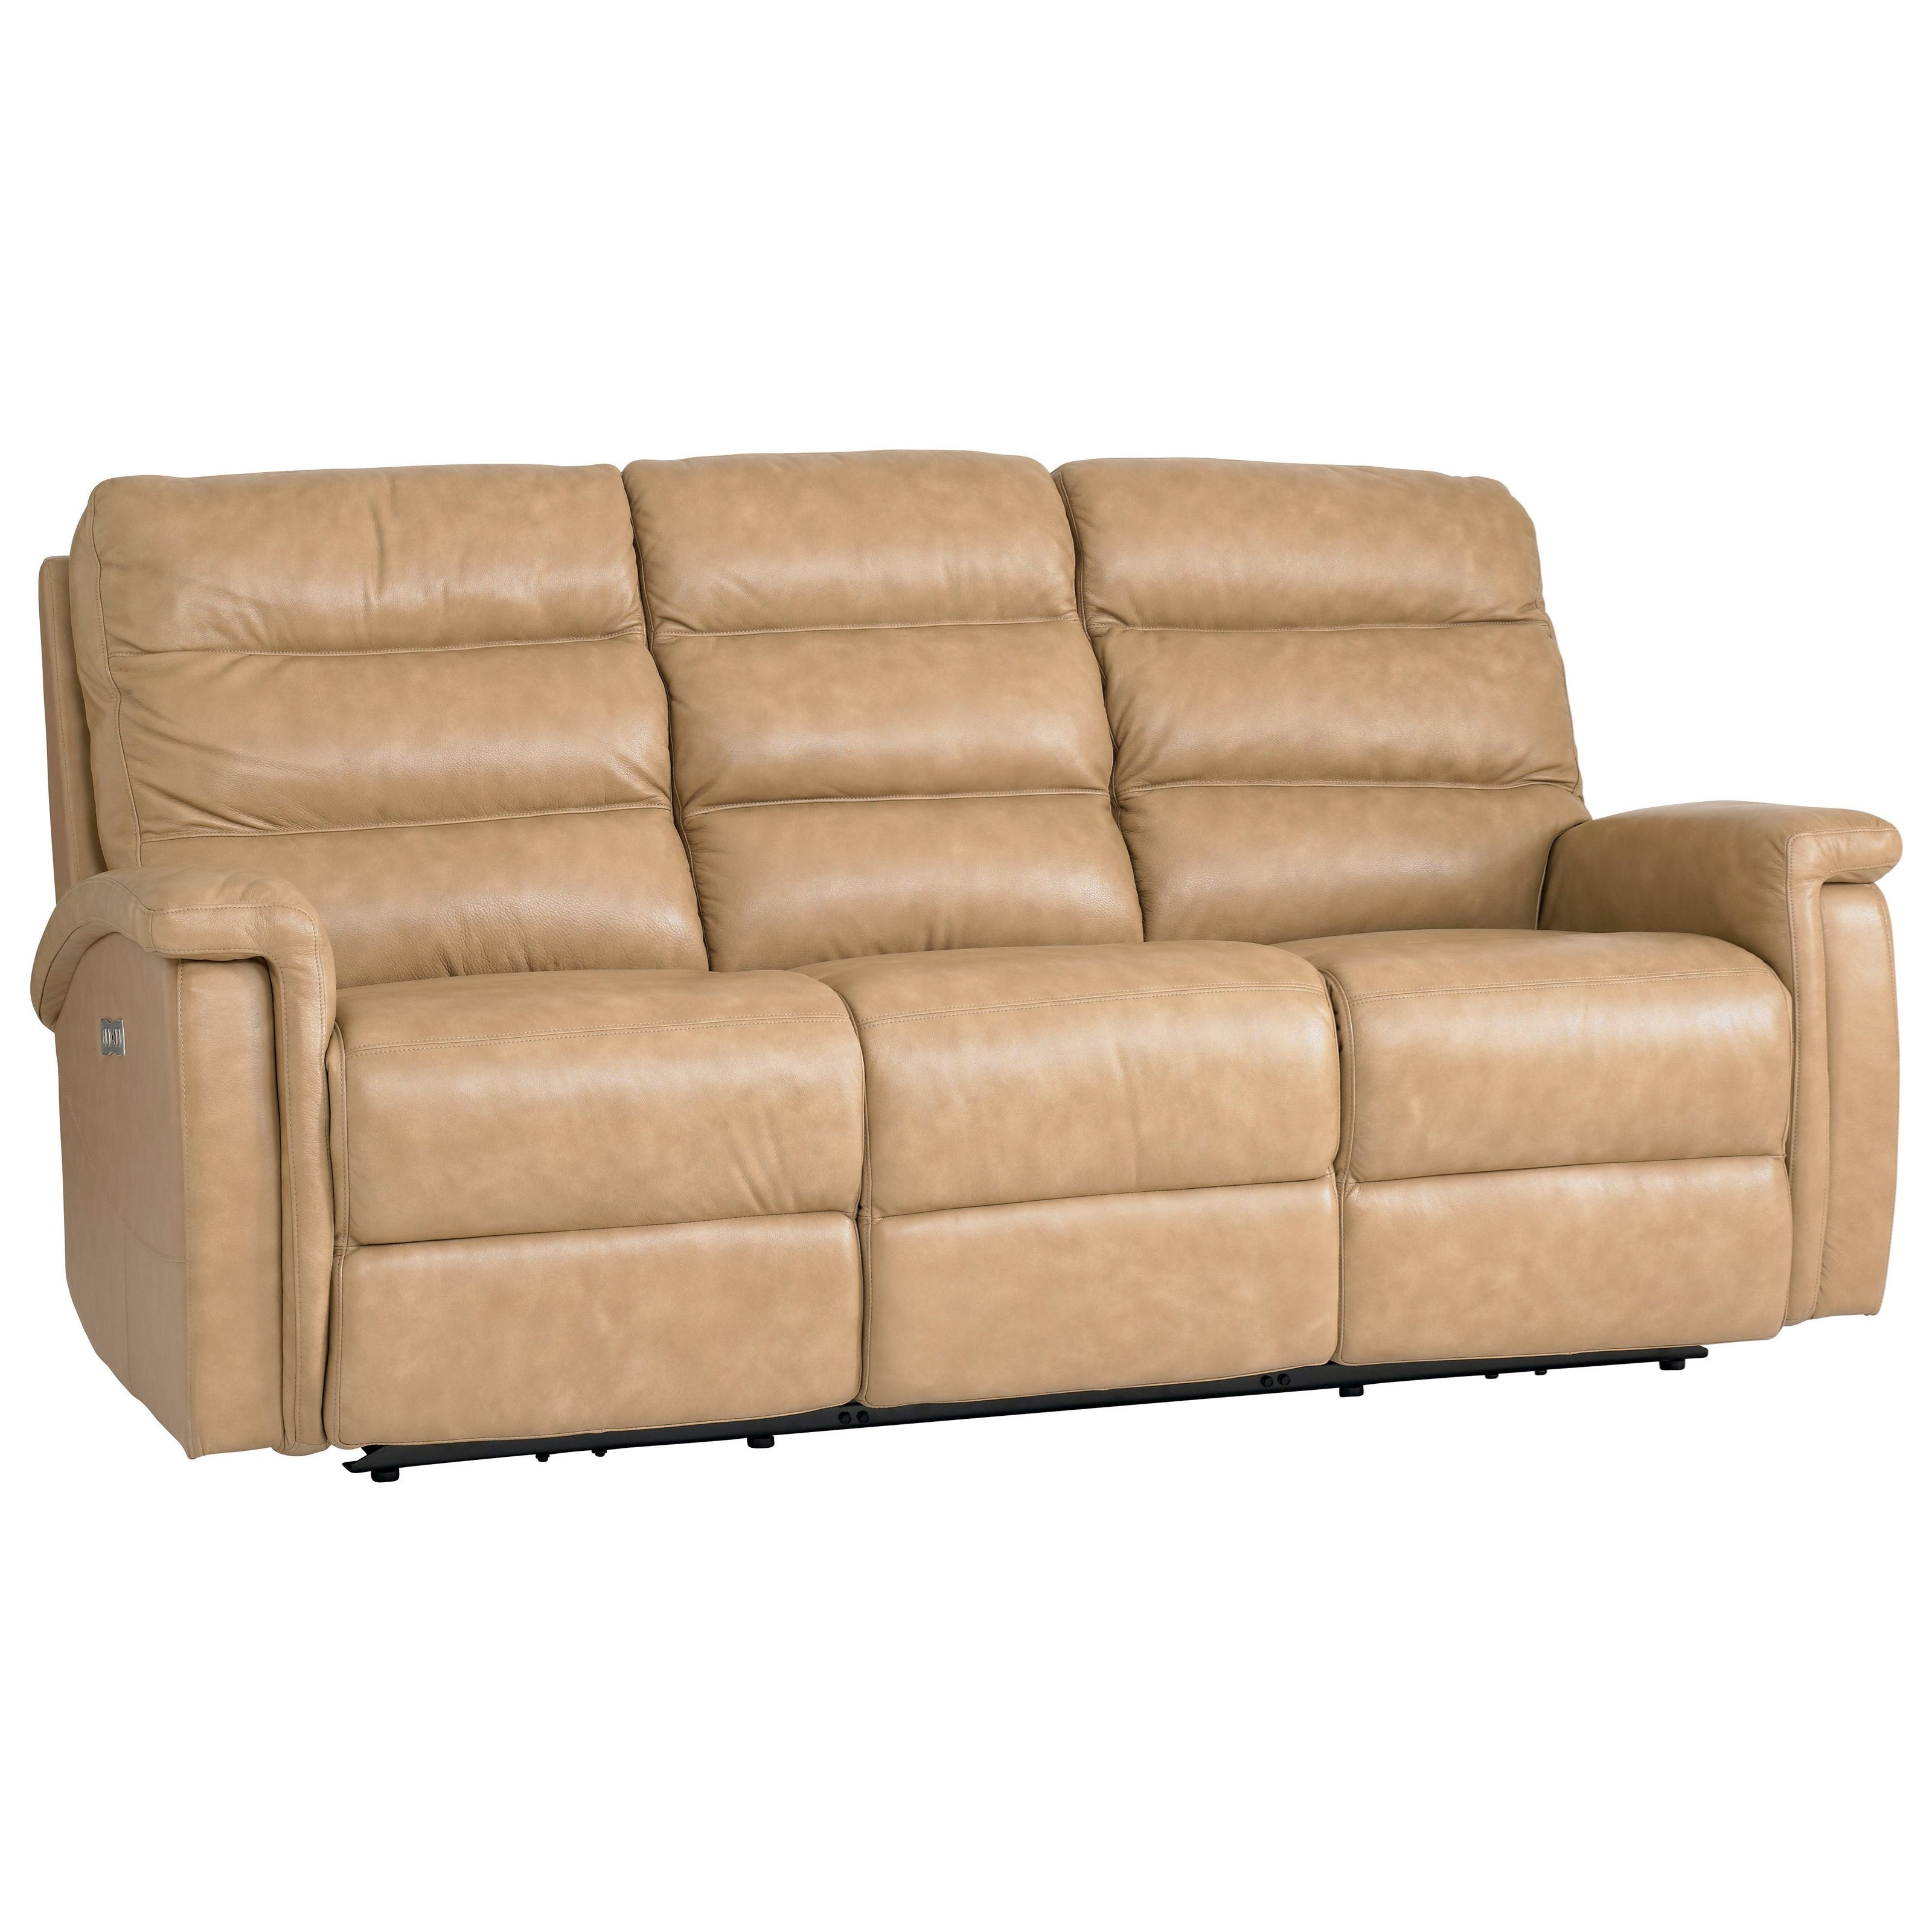 Regency - Club Level Motion Sofa with Power Adjustable Headrests by Bassett at Bassett of Cool Springs